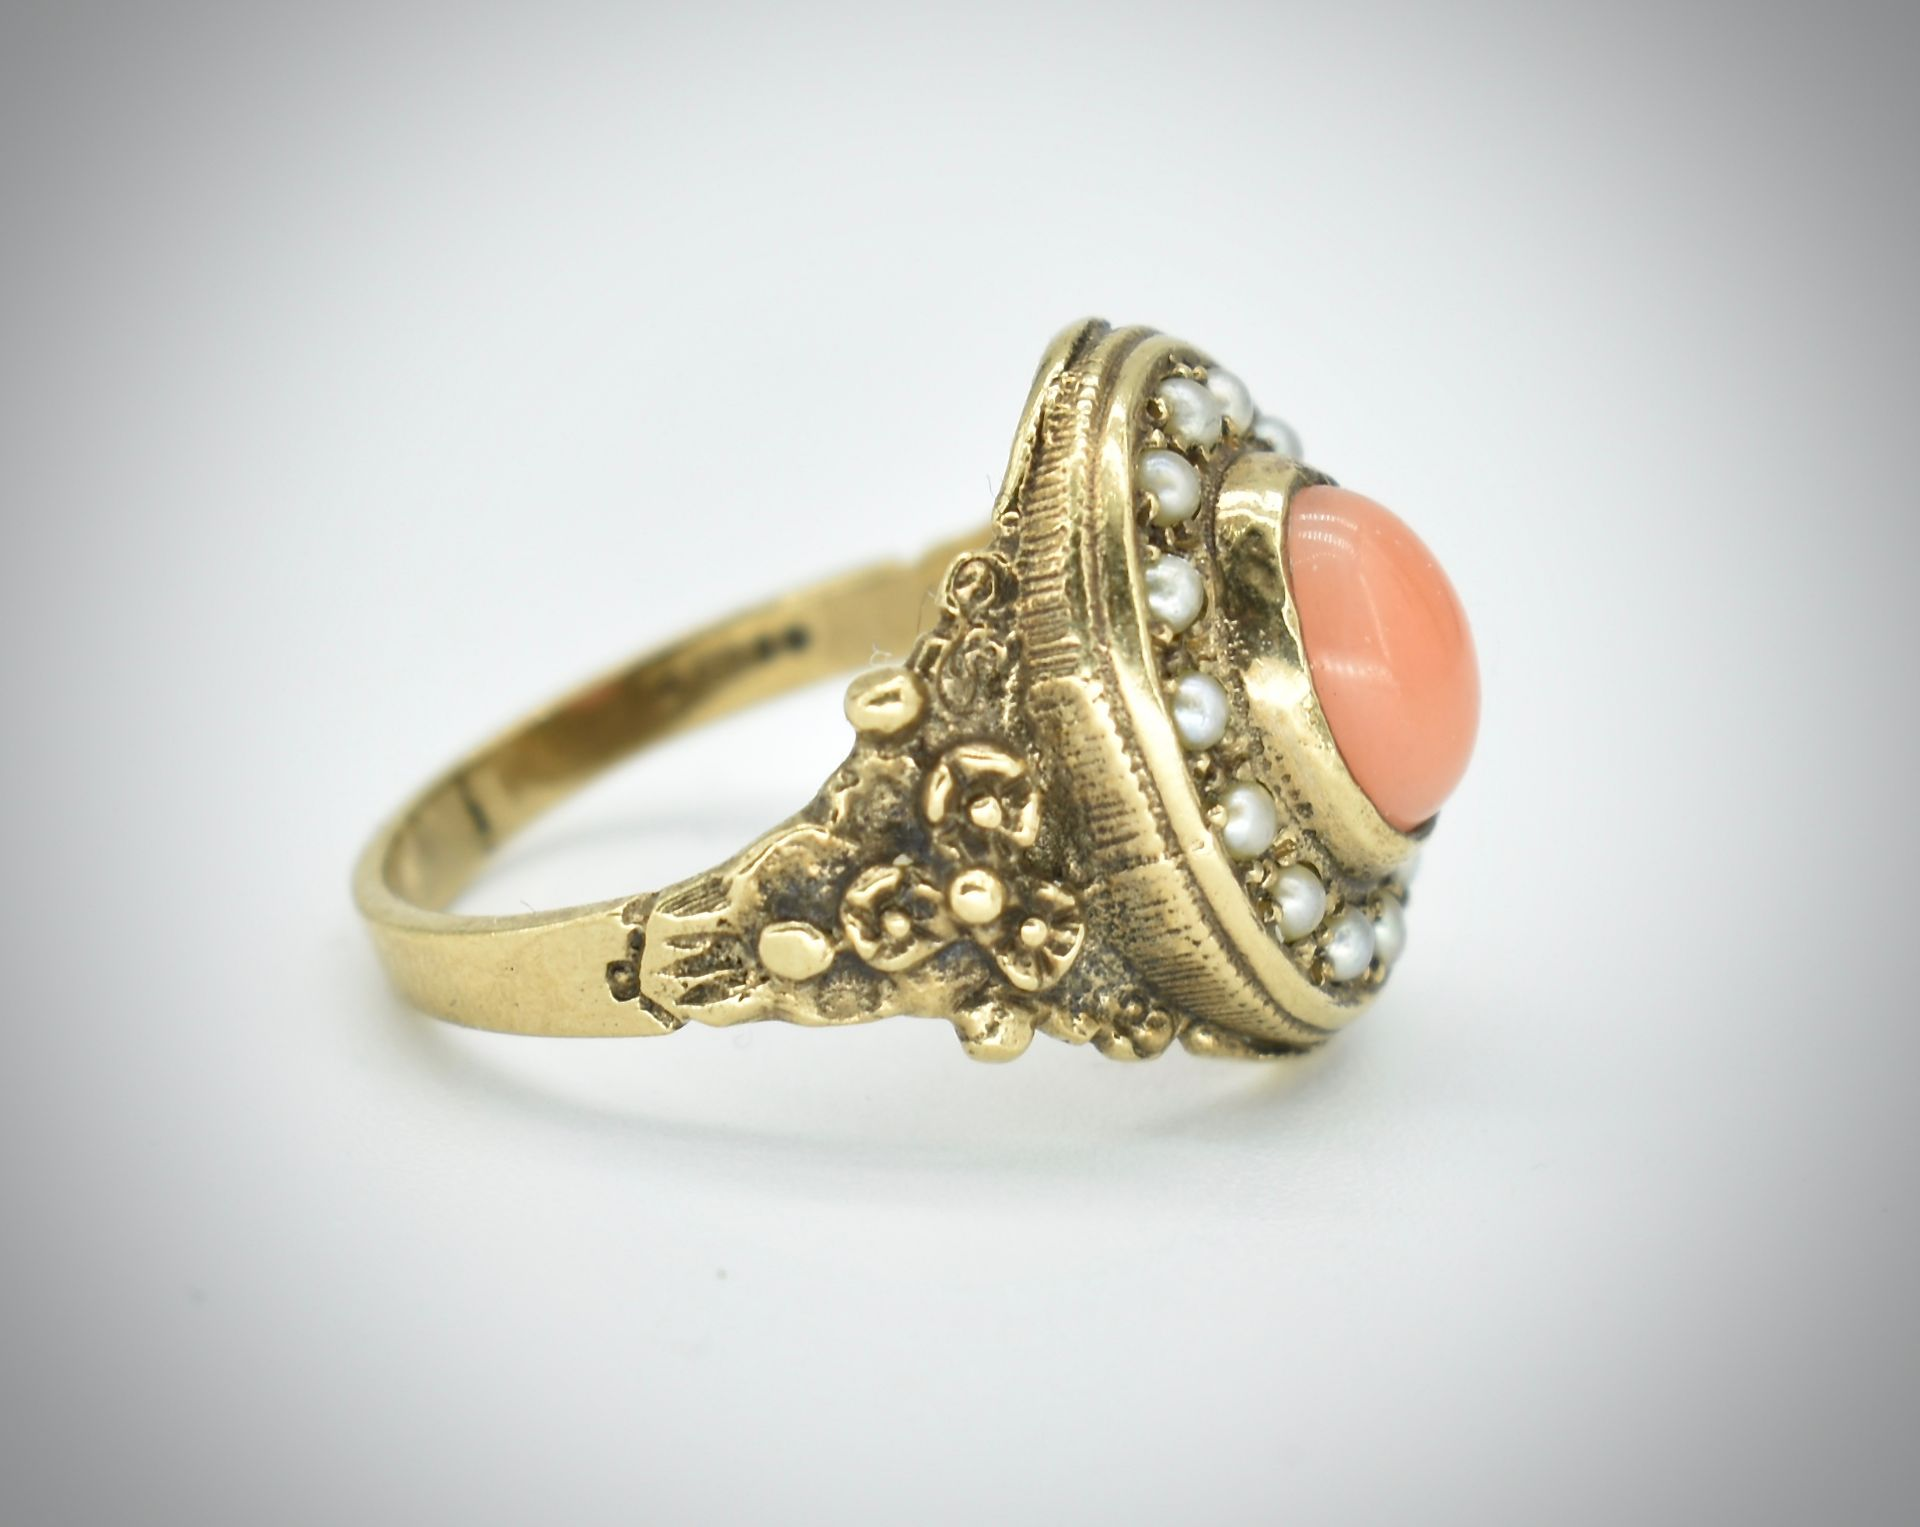 9ct Gold Coral & Pearl Ring - Image 2 of 4